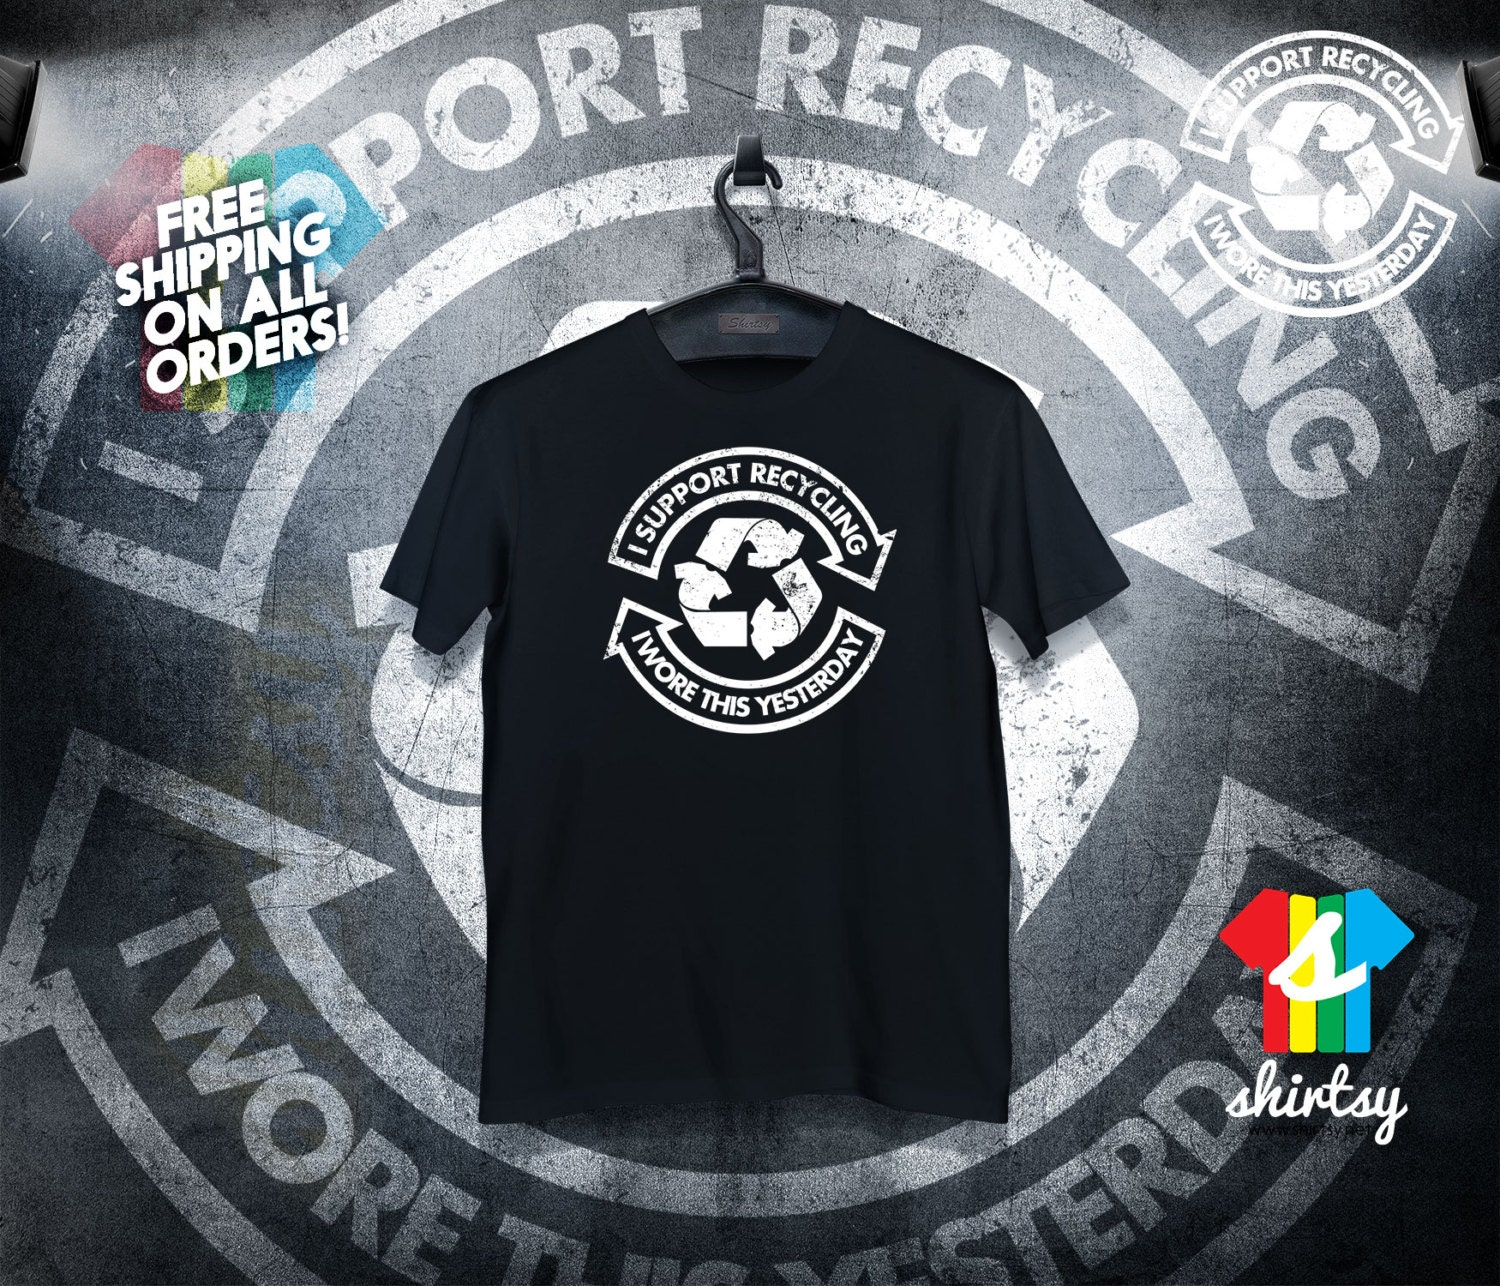 Support Recycling Tshirt Tumblr Shirt Hipster Instagram Shirt Graphic Tee Gift